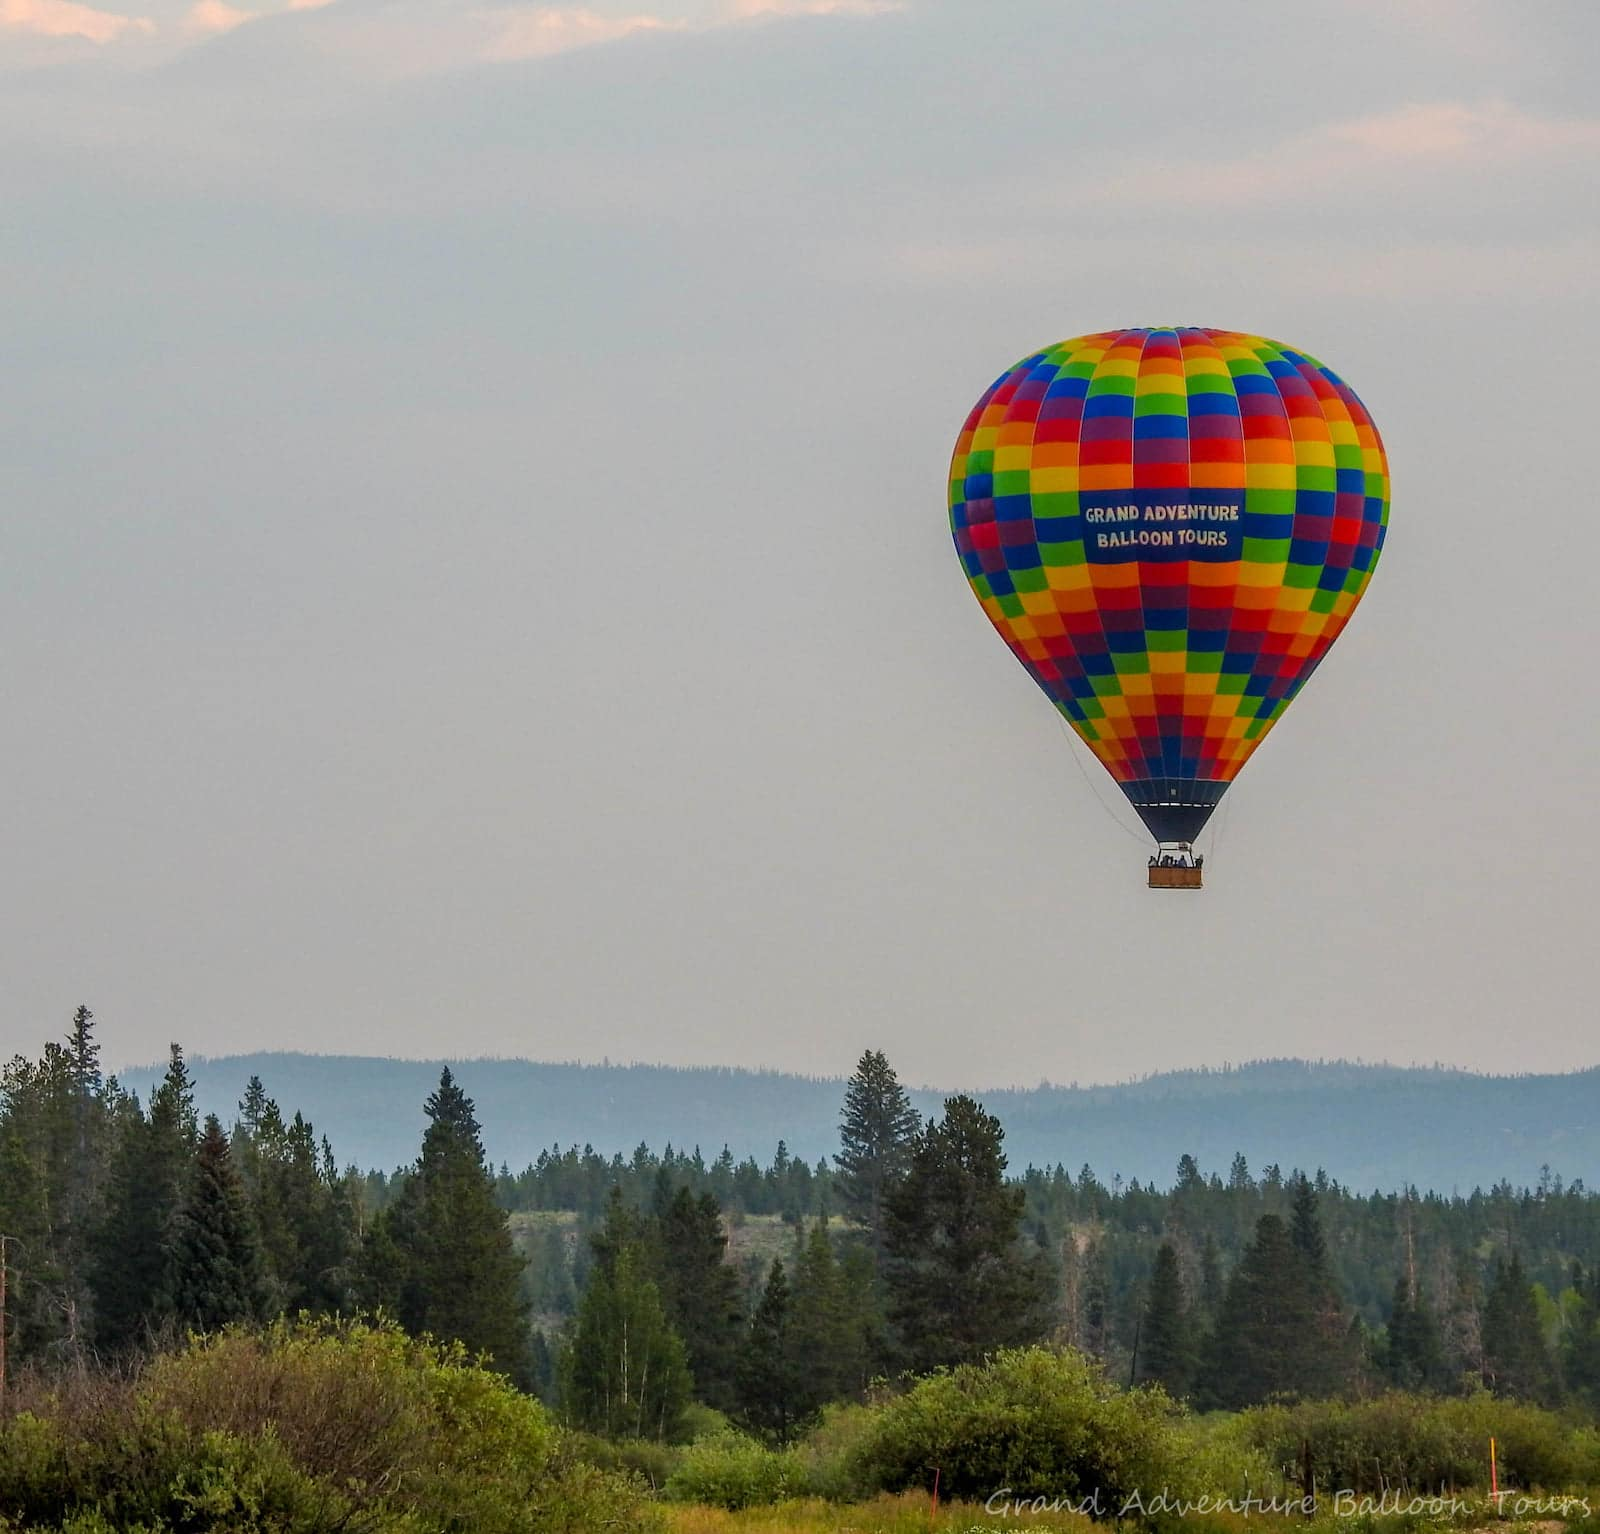 Image of a Grand Adventure Balloon Tours hot air balloon in Fraser, CO